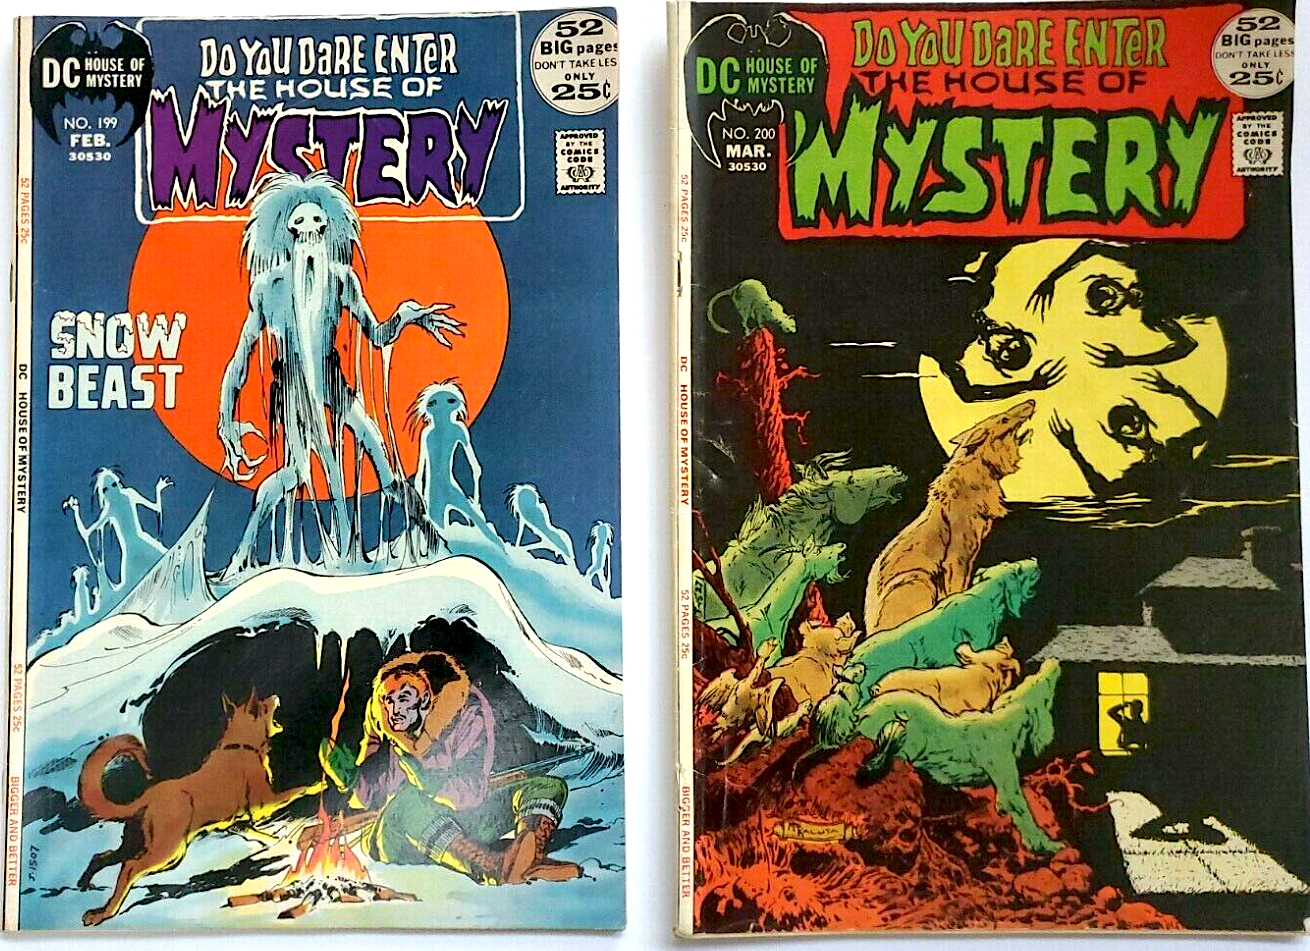 DC COMICS BRONZE AGE THE HOUSE OF MYSTERY (1972) No. 199 &200